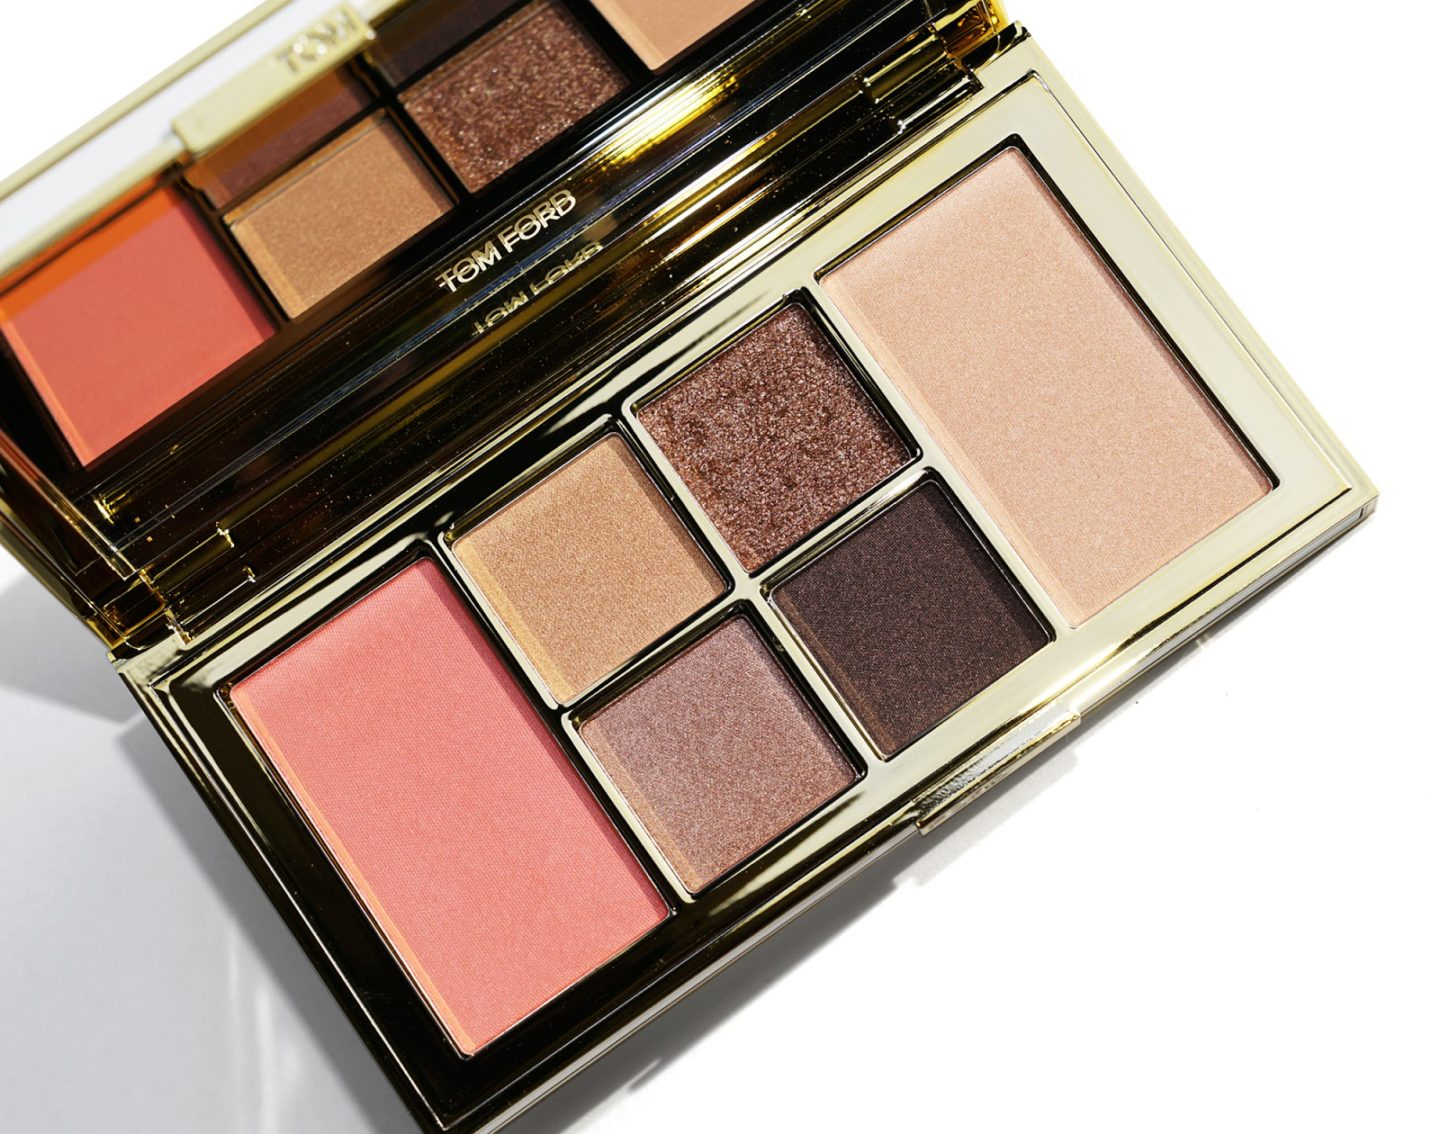 Tom Ford Beauty Winter Soleil Eye And Cheek Palettes And